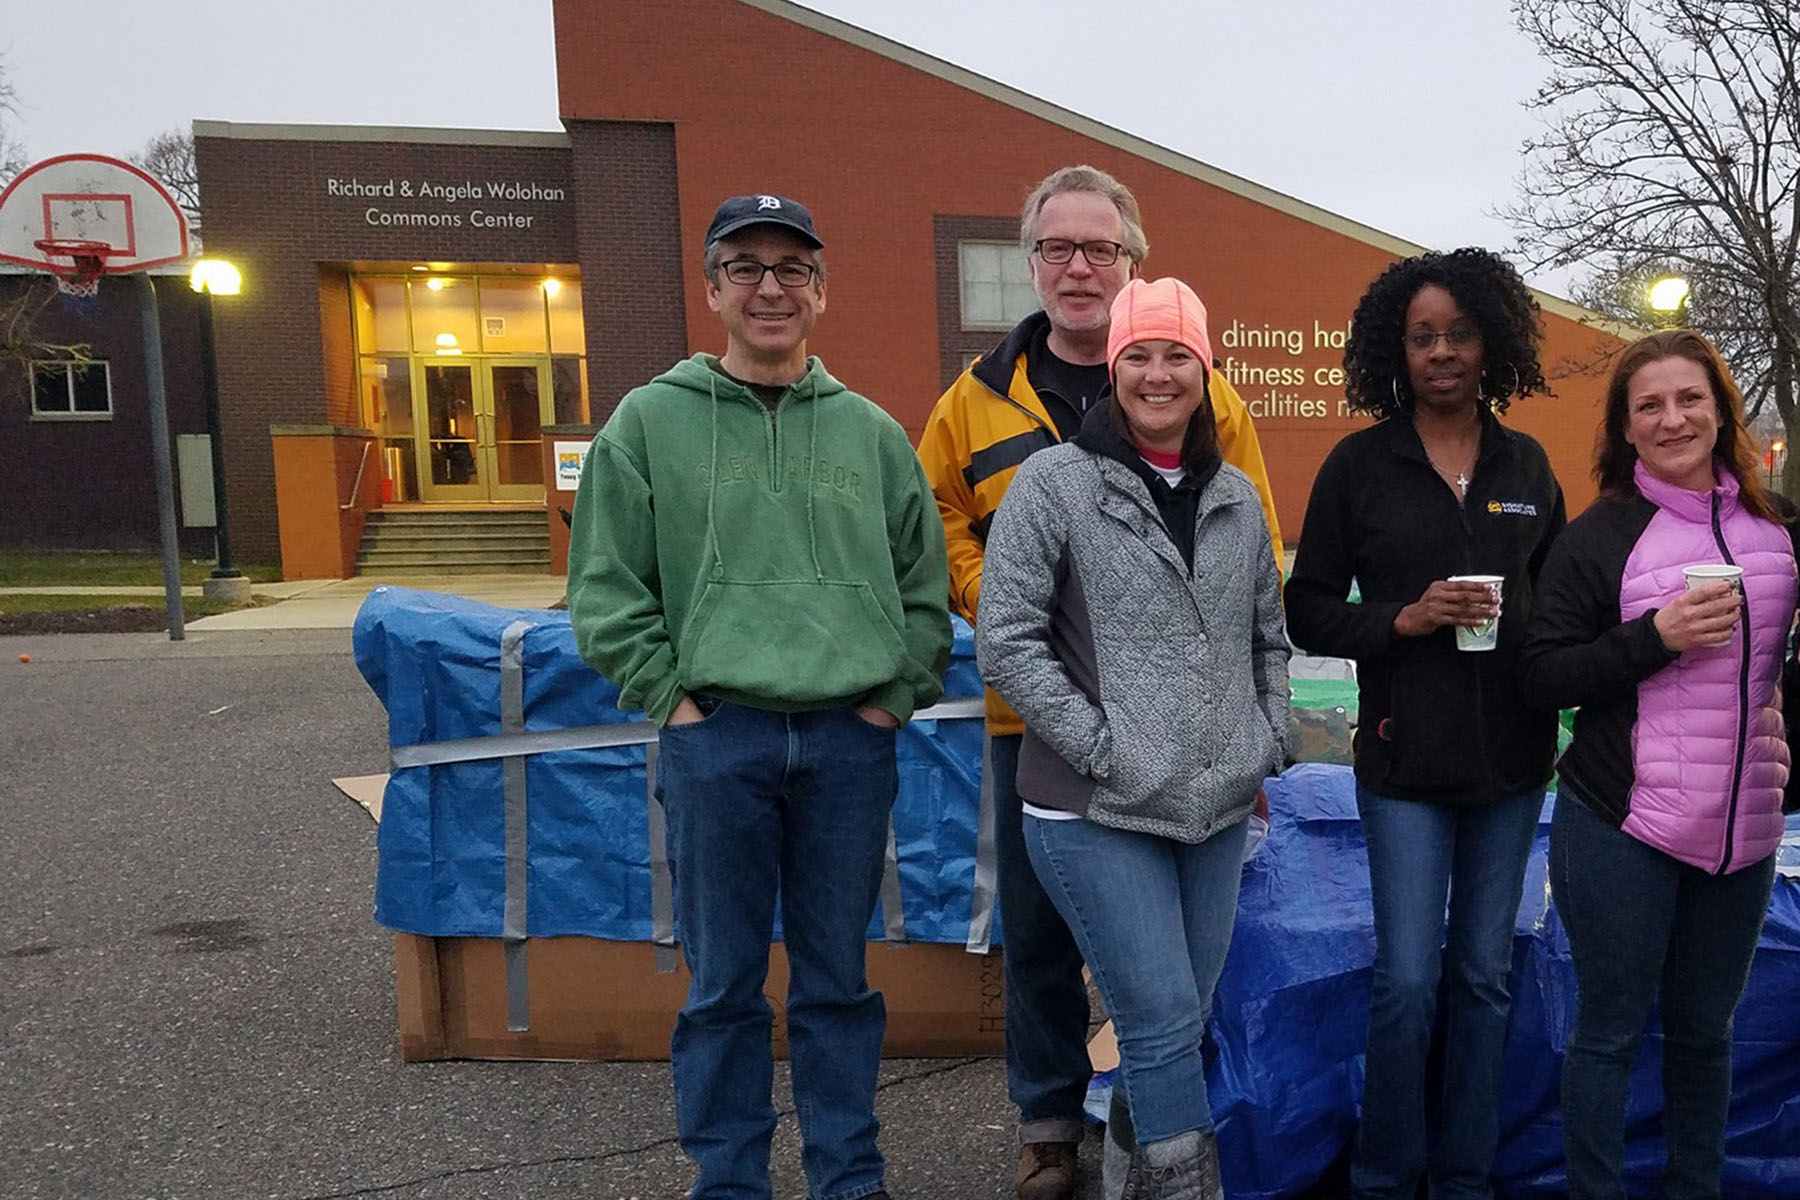 Assisting with clean-up after Covenant House Young Professional's Sleep Out